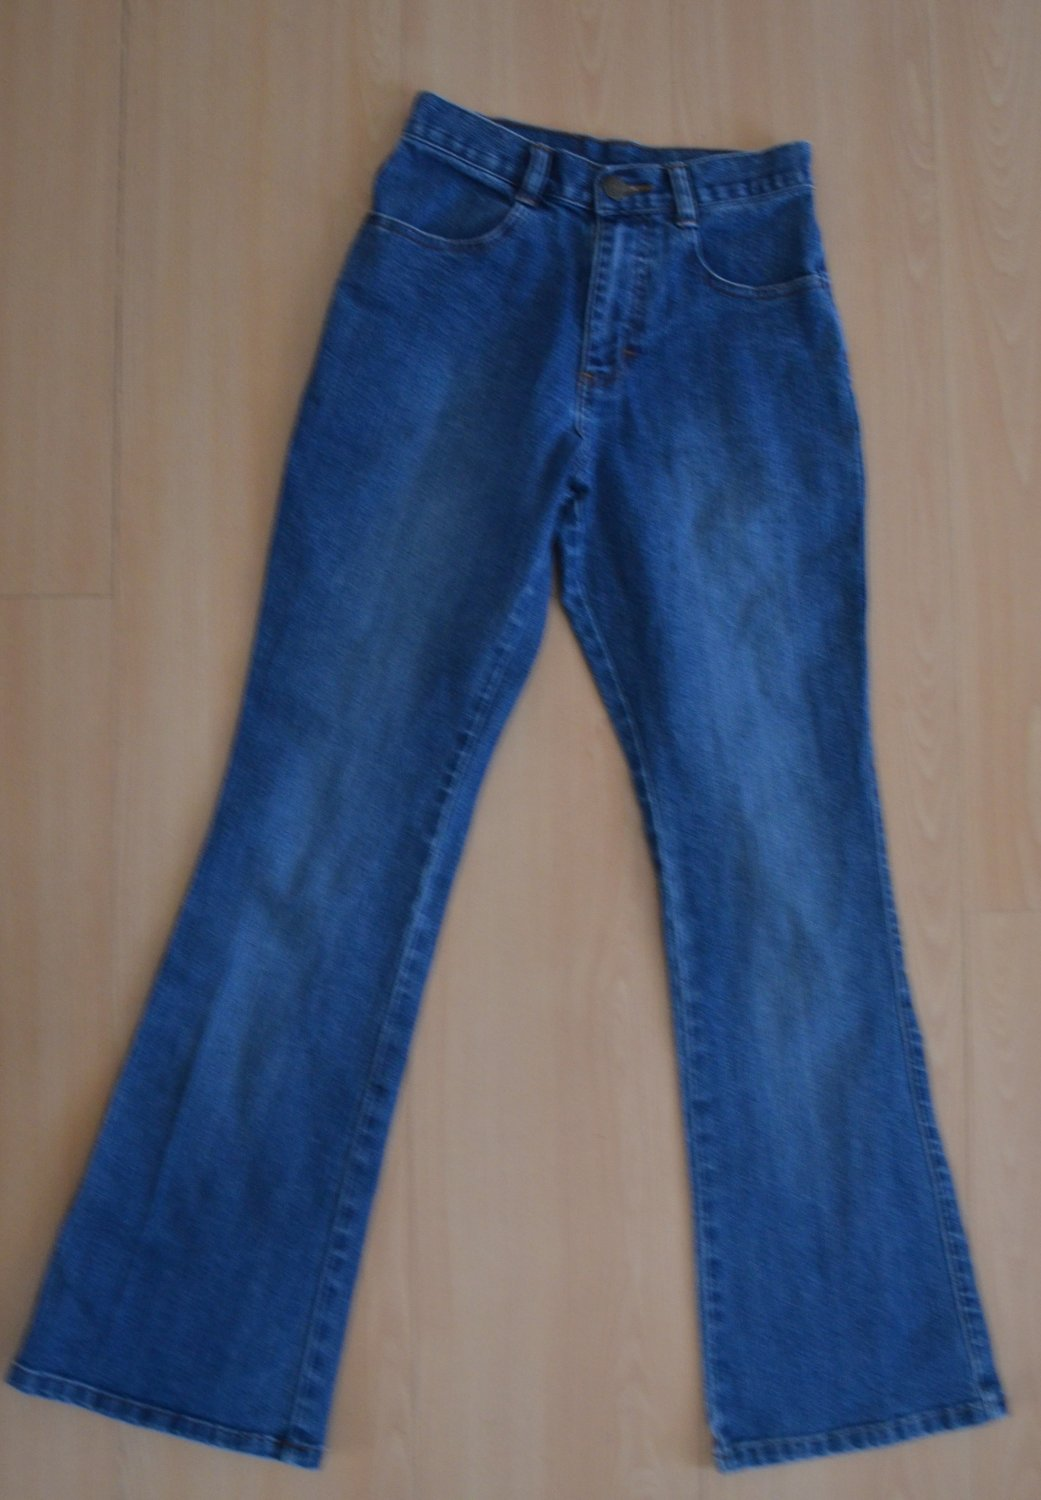 Lee Blue Jeans Denims Girls 14 Slims 14S Flare